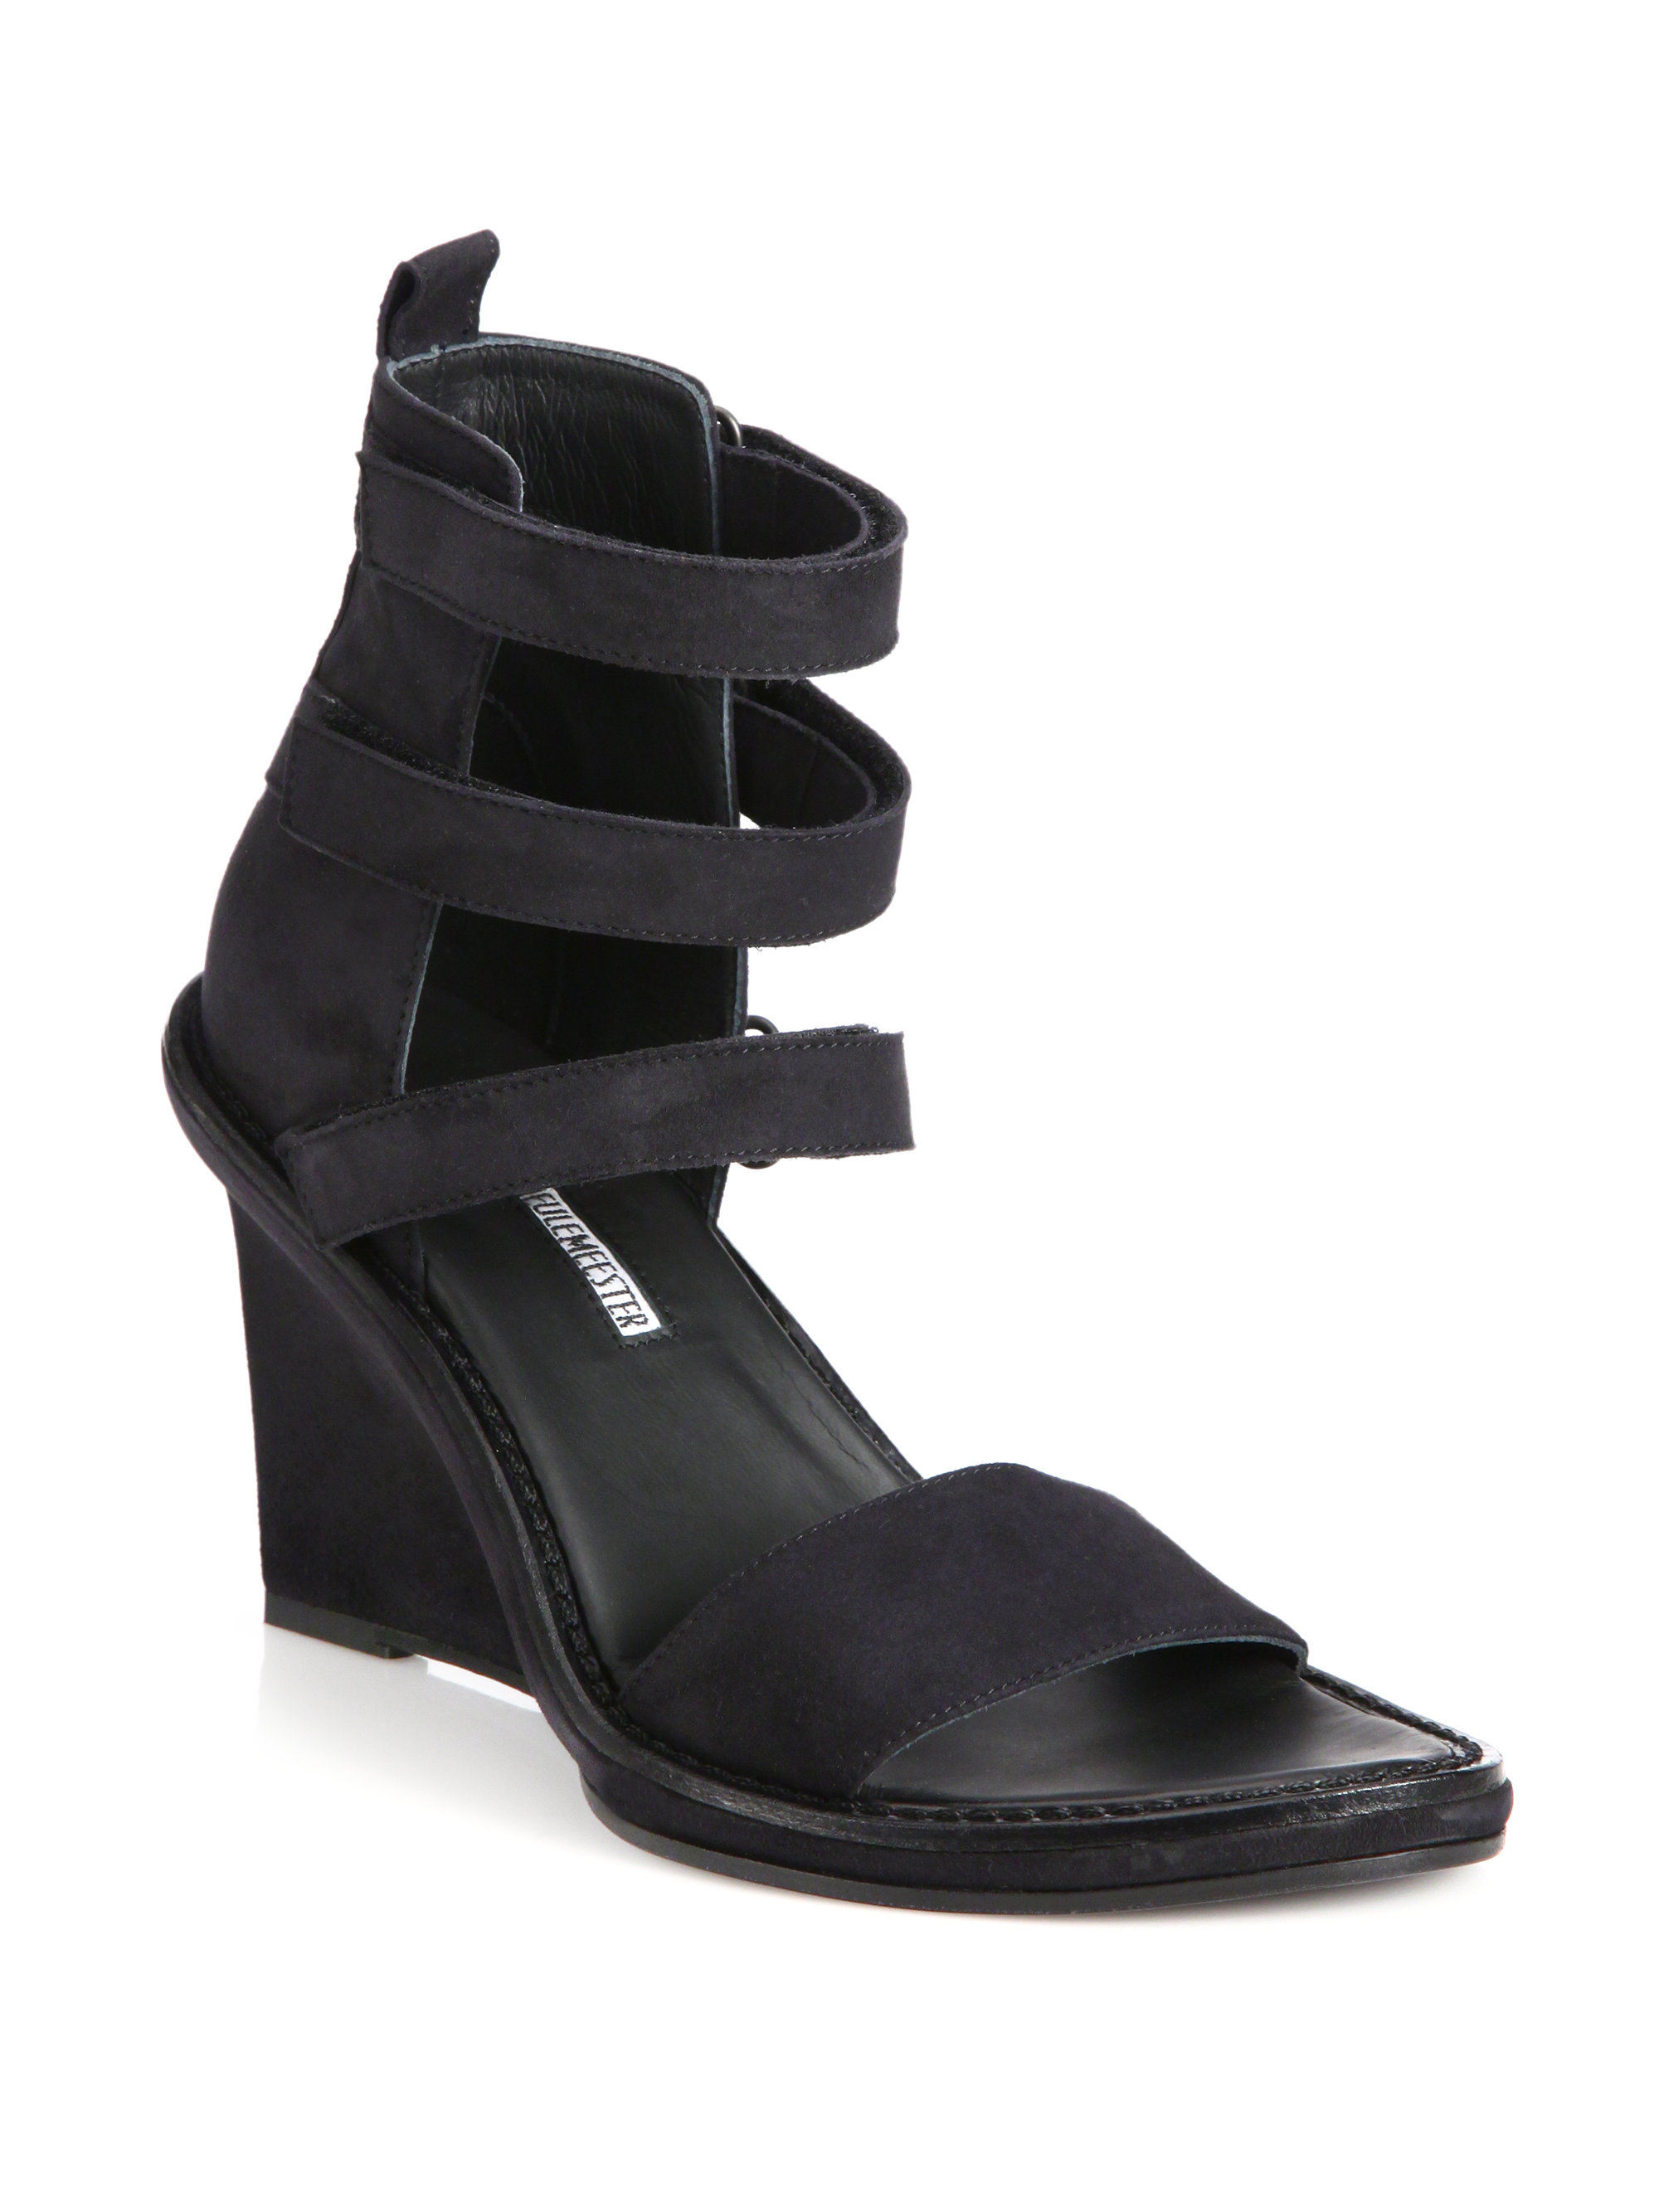 Ann Demeulemeester Suede Wedge Sandals fake for sale 5G0ahY3